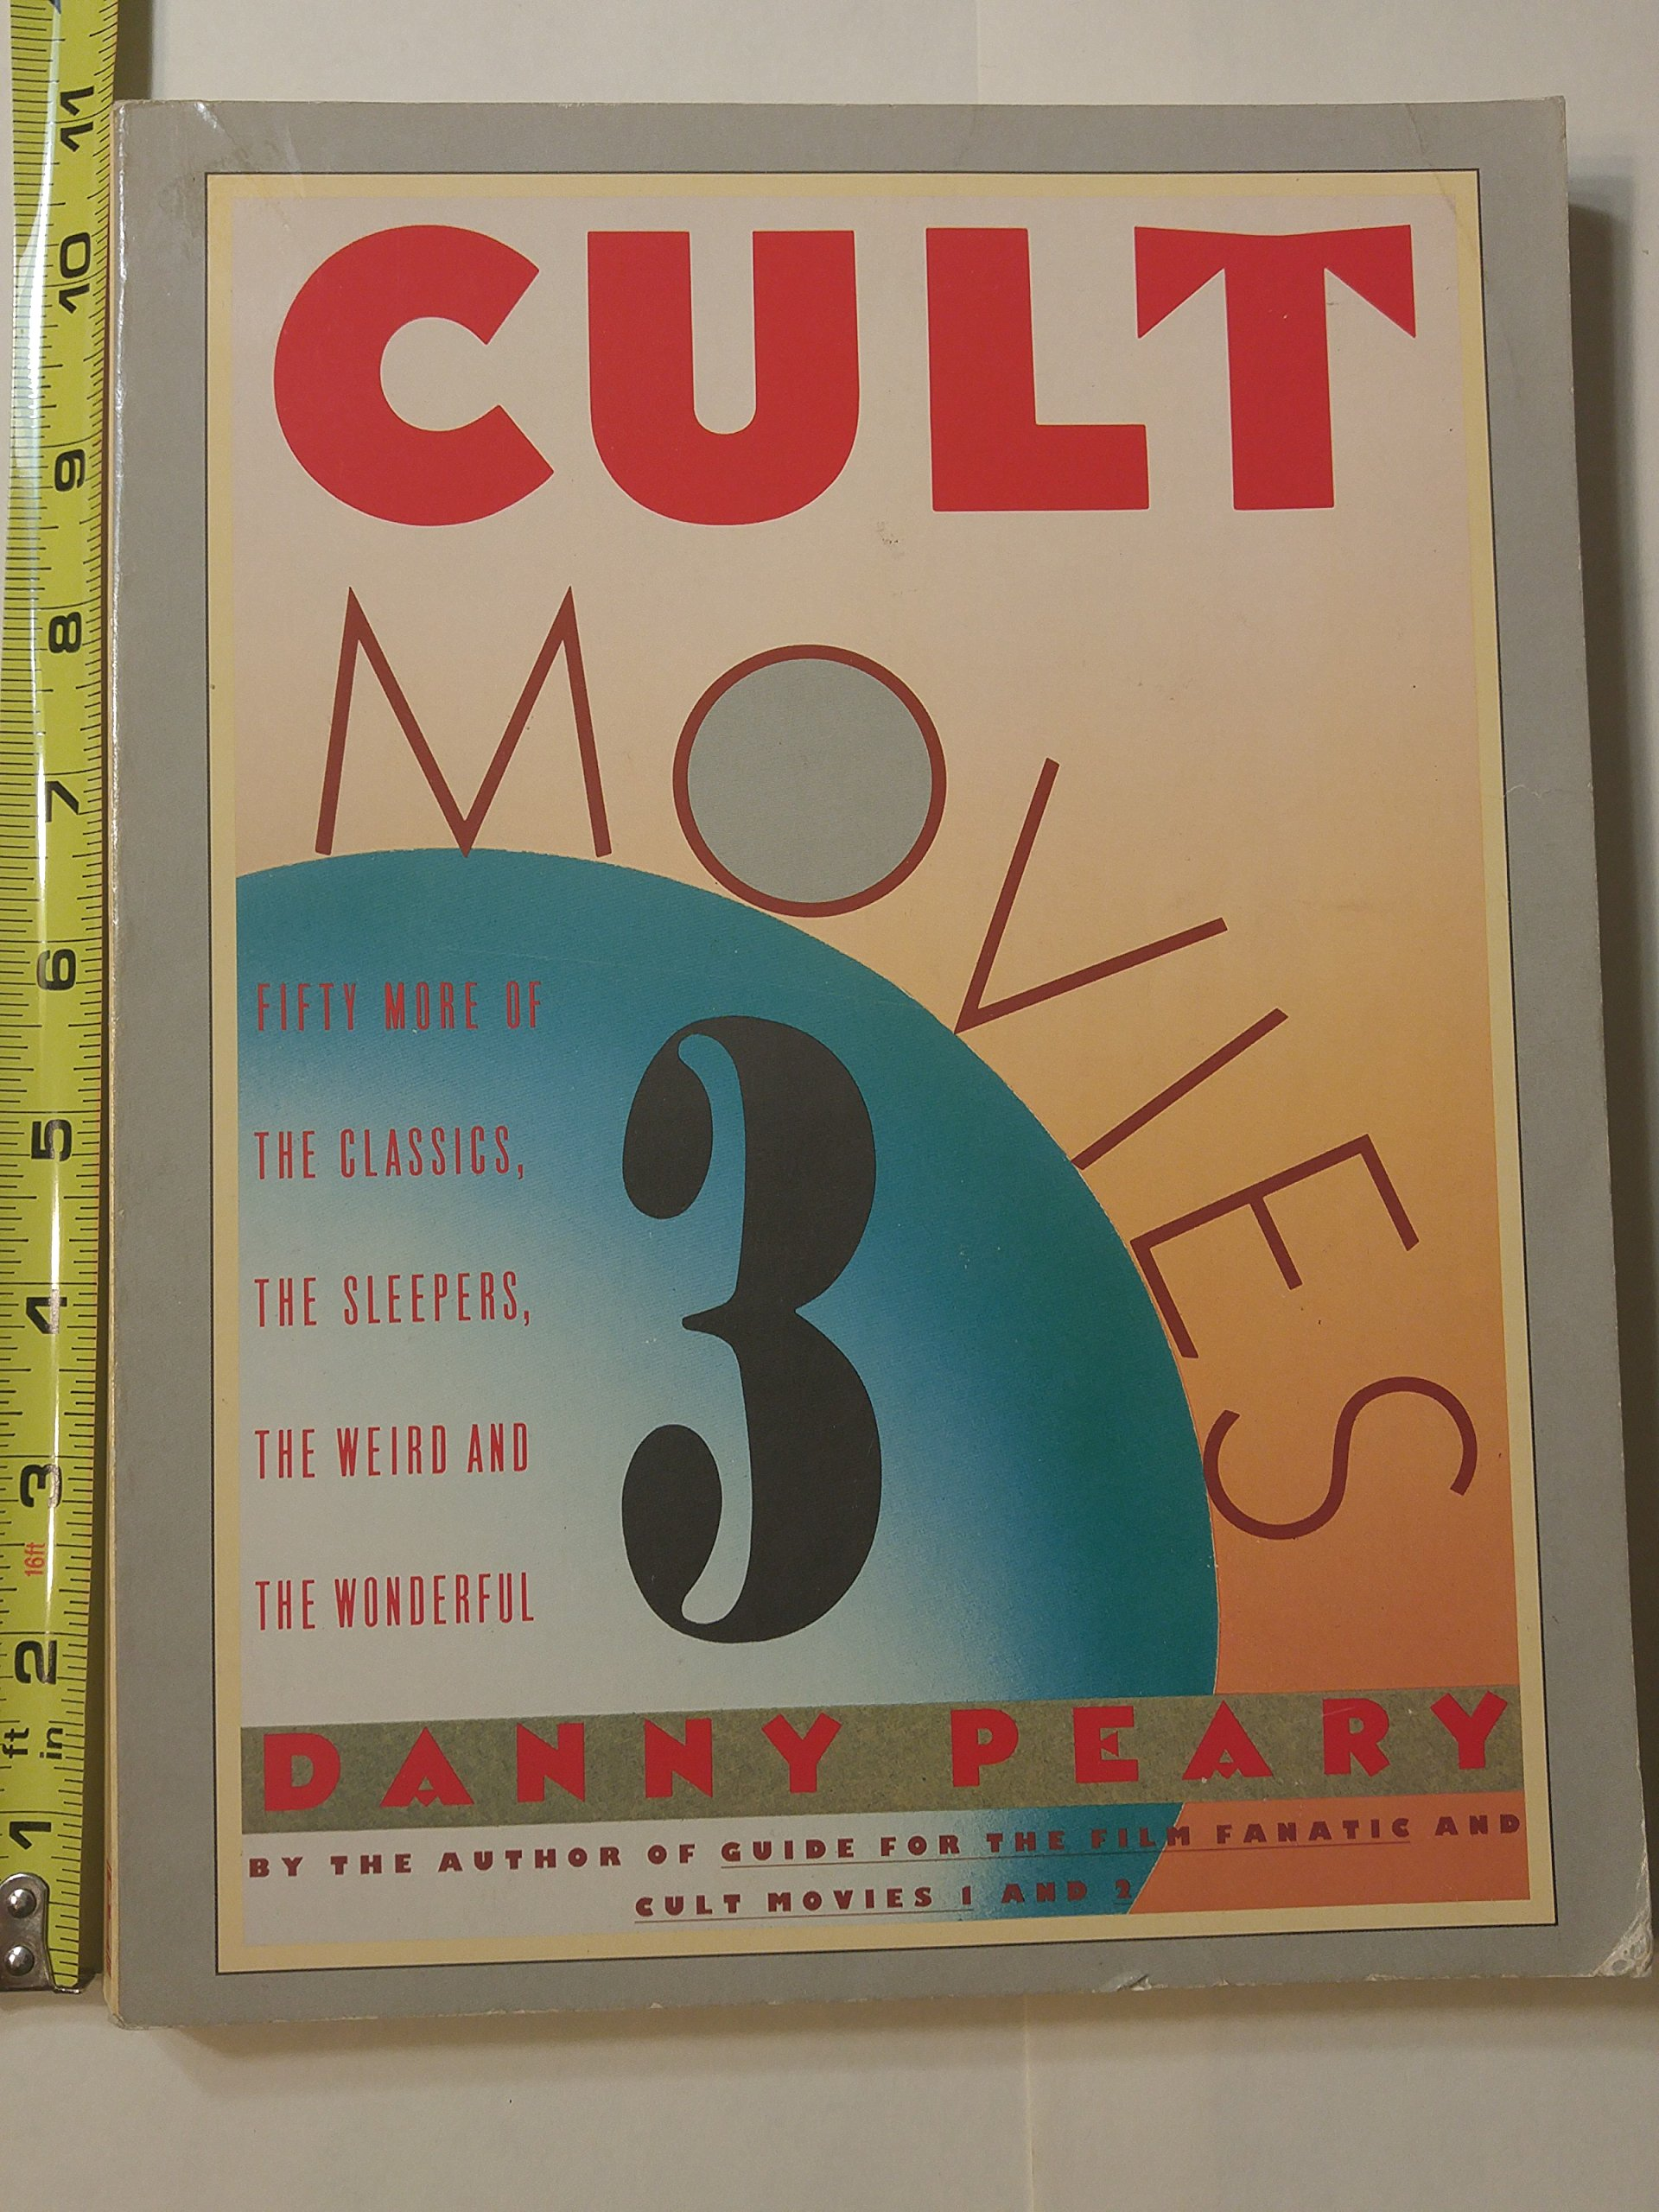 Cult movies 3 50 more of the classics the sleepers the weird and cult movies 3 50 more of the classics the sleepers the weird and the wonderful danny peary 9780671648107 amazon books fandeluxe Images